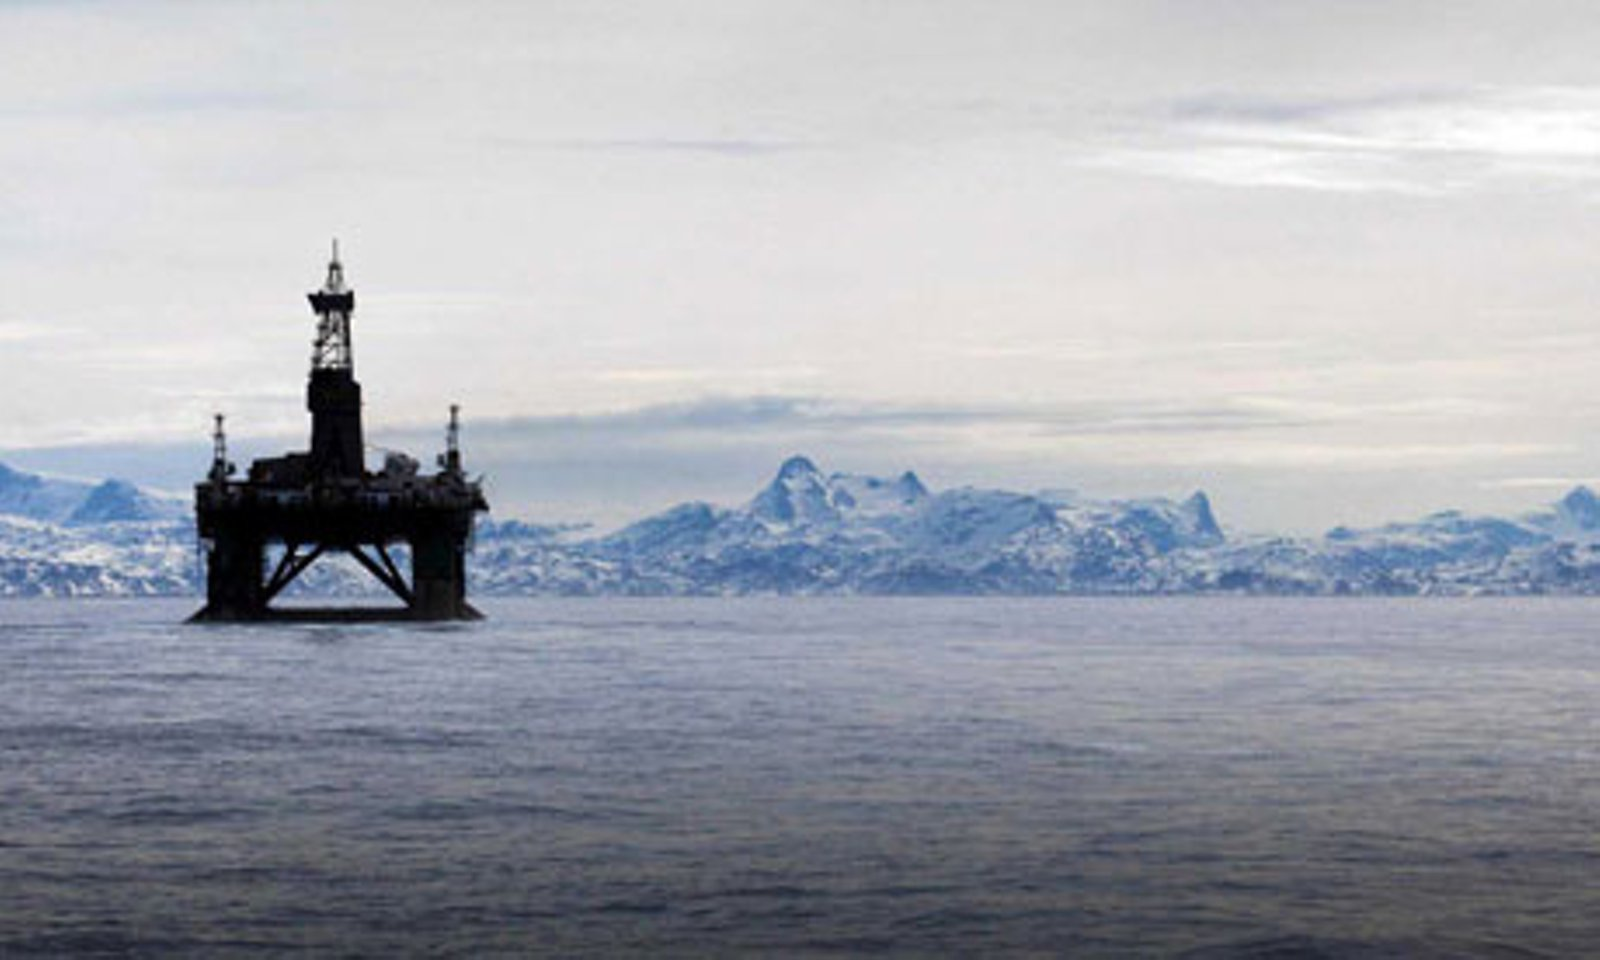 arctic oil drilling The united states is not ready to clean up an oil spill in the arctic, the head of the coast guard said yesterday the warning comes as congress prepares to open up more drilling in a region.